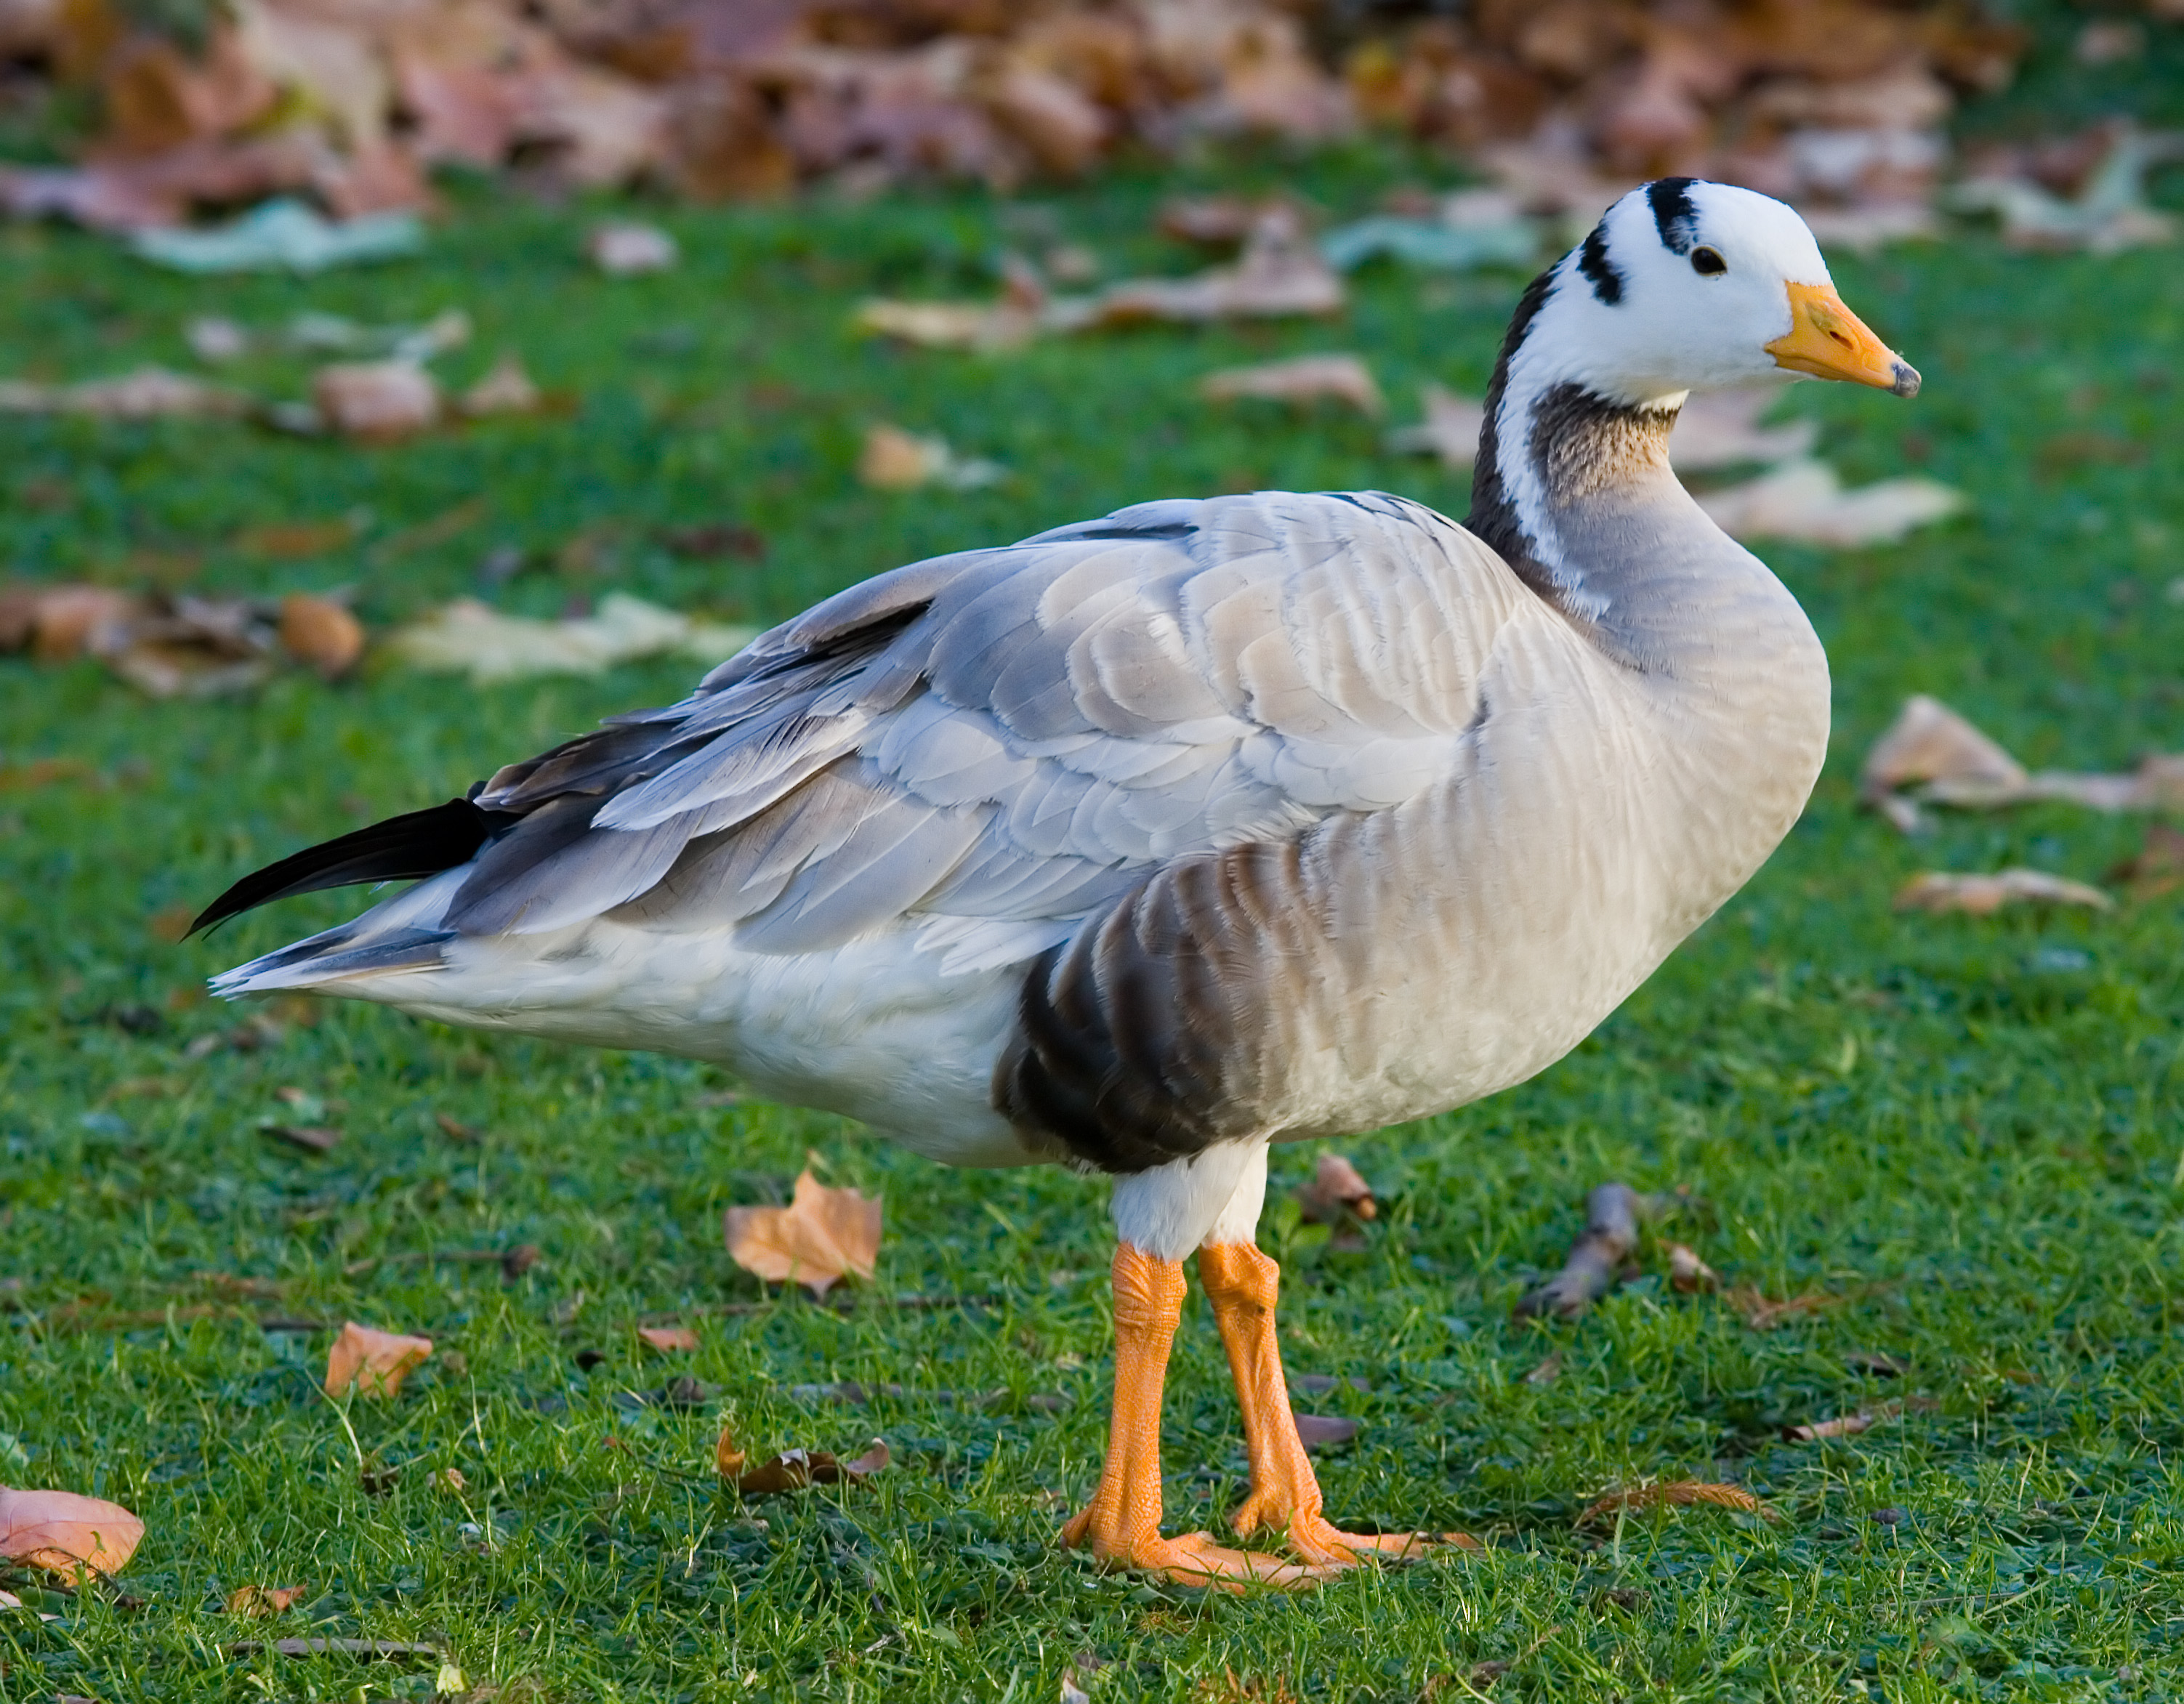 Canada Goose langford parka outlet shop - Bar-headed goose - Wikipedia, the free encyclopedia